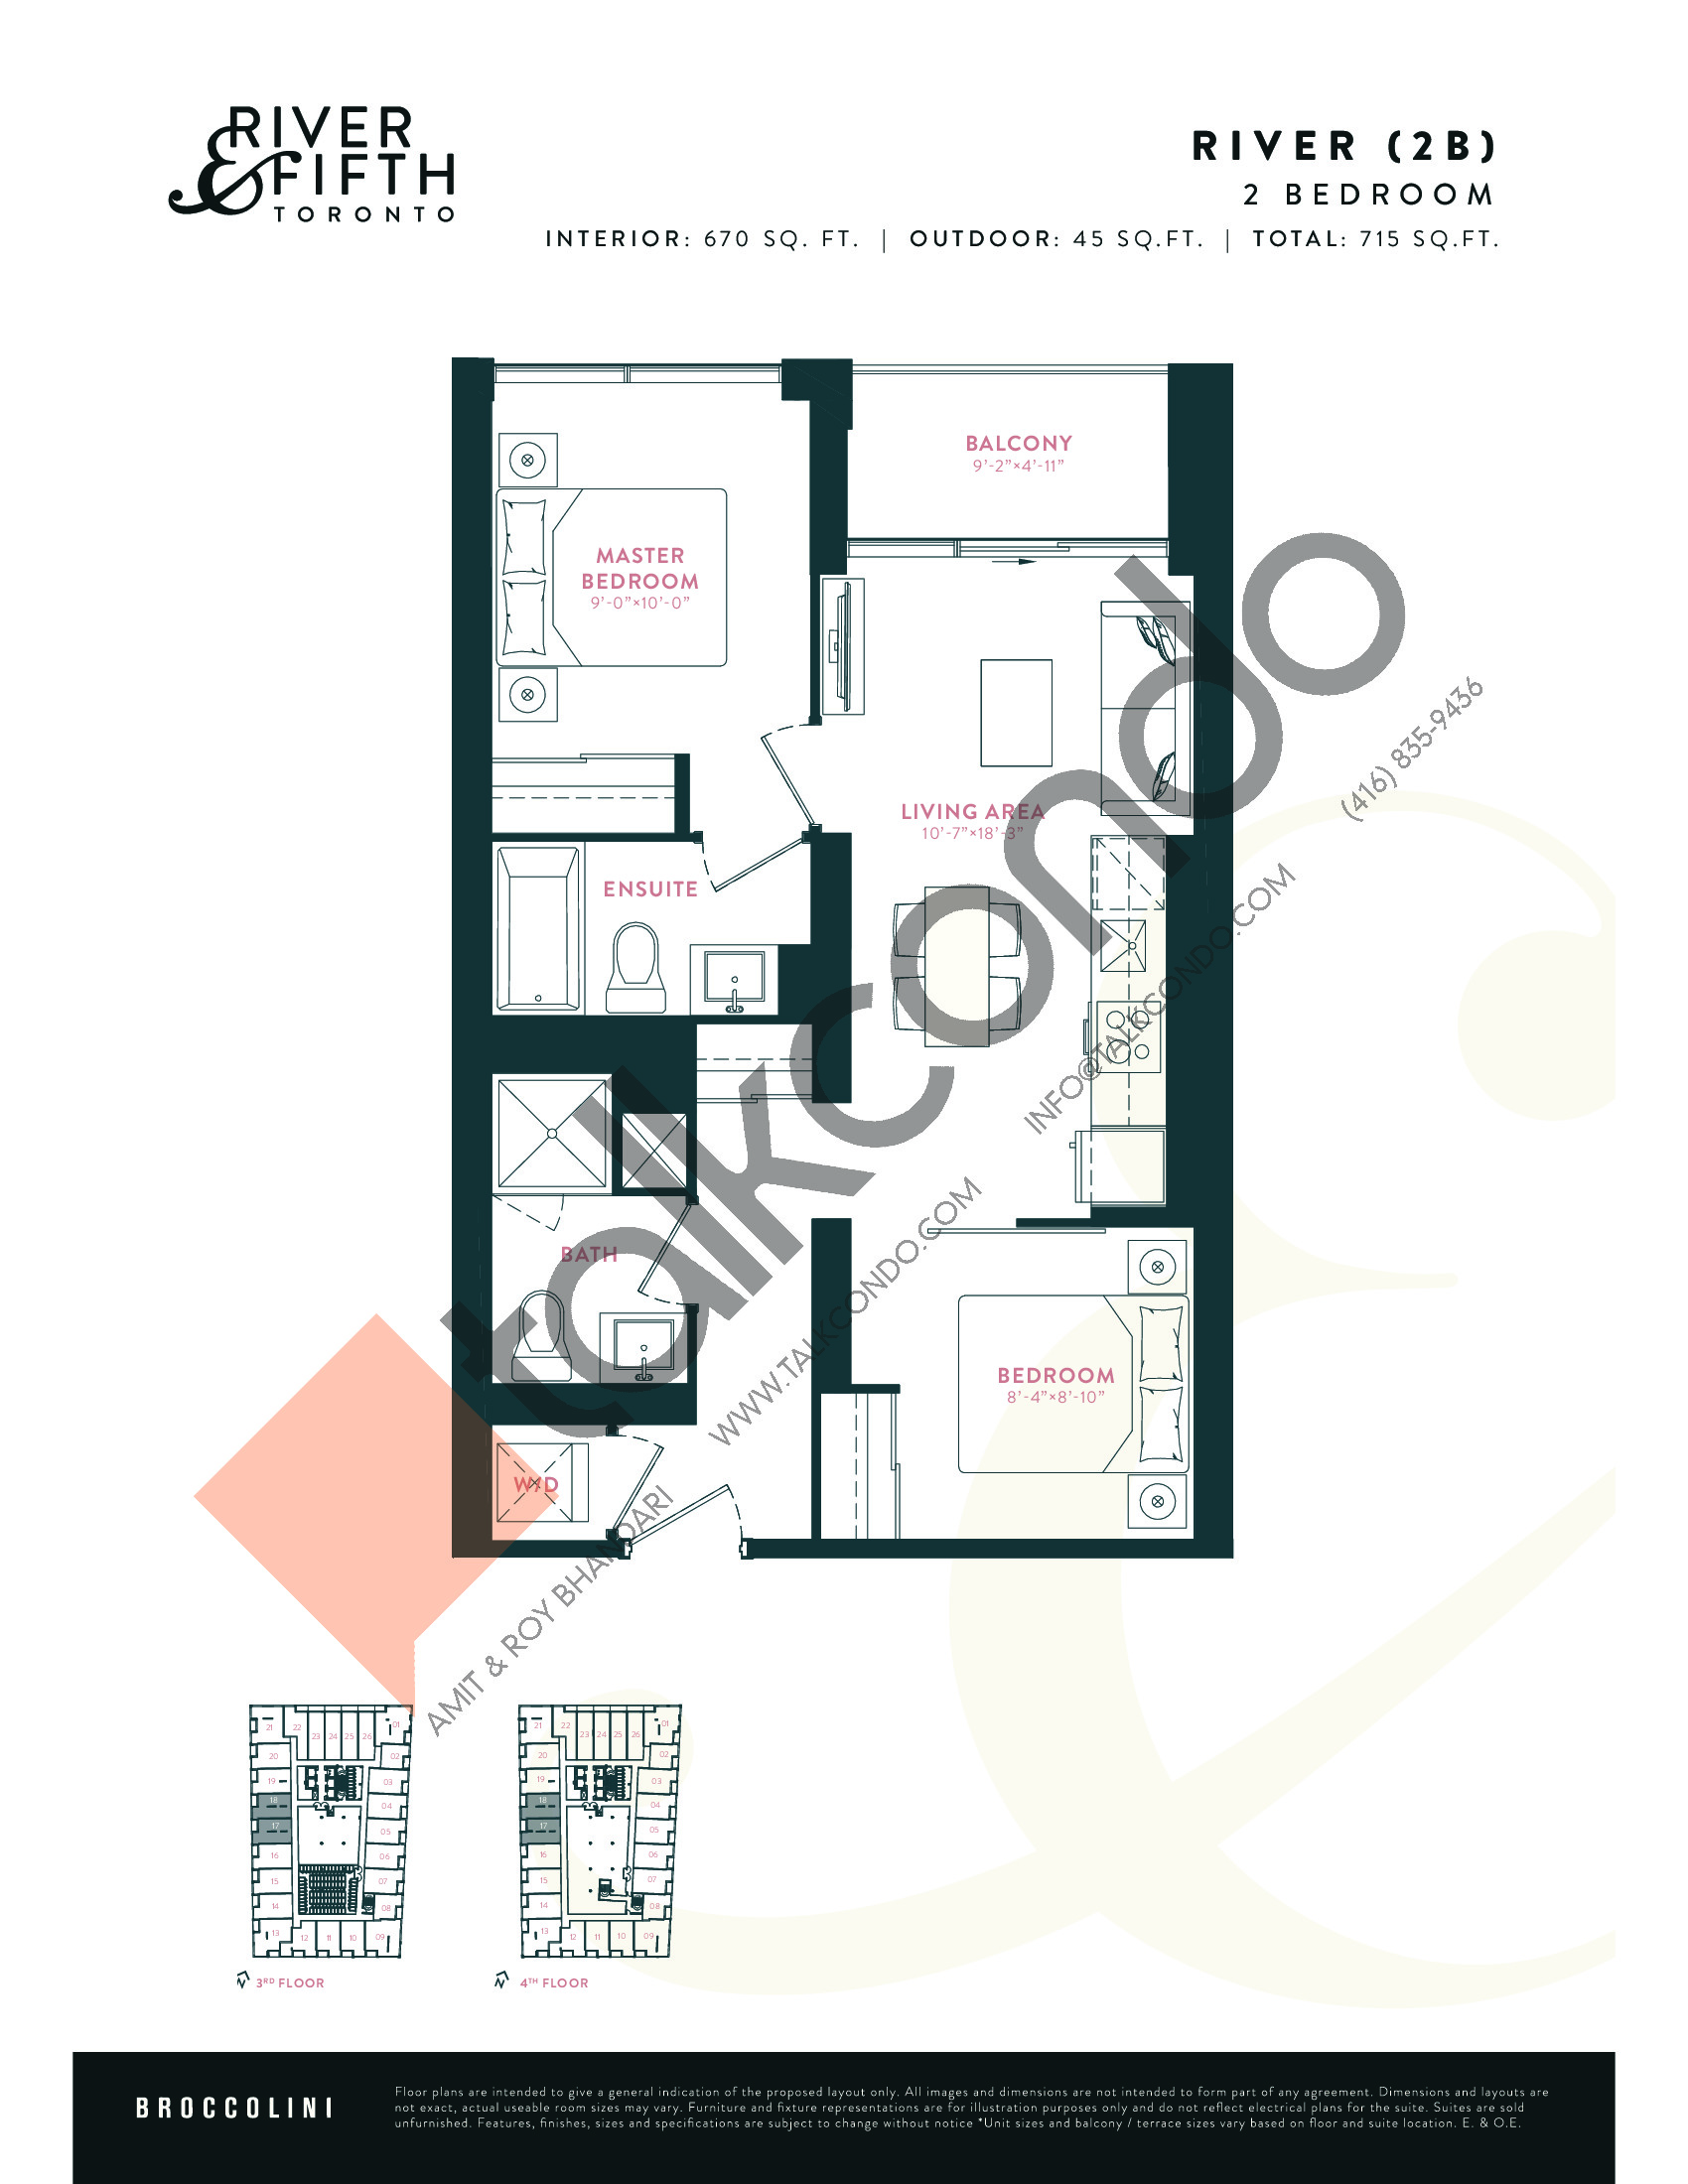 River (2B) Floor Plan at River & Fifth Condos - 670 sq.ft